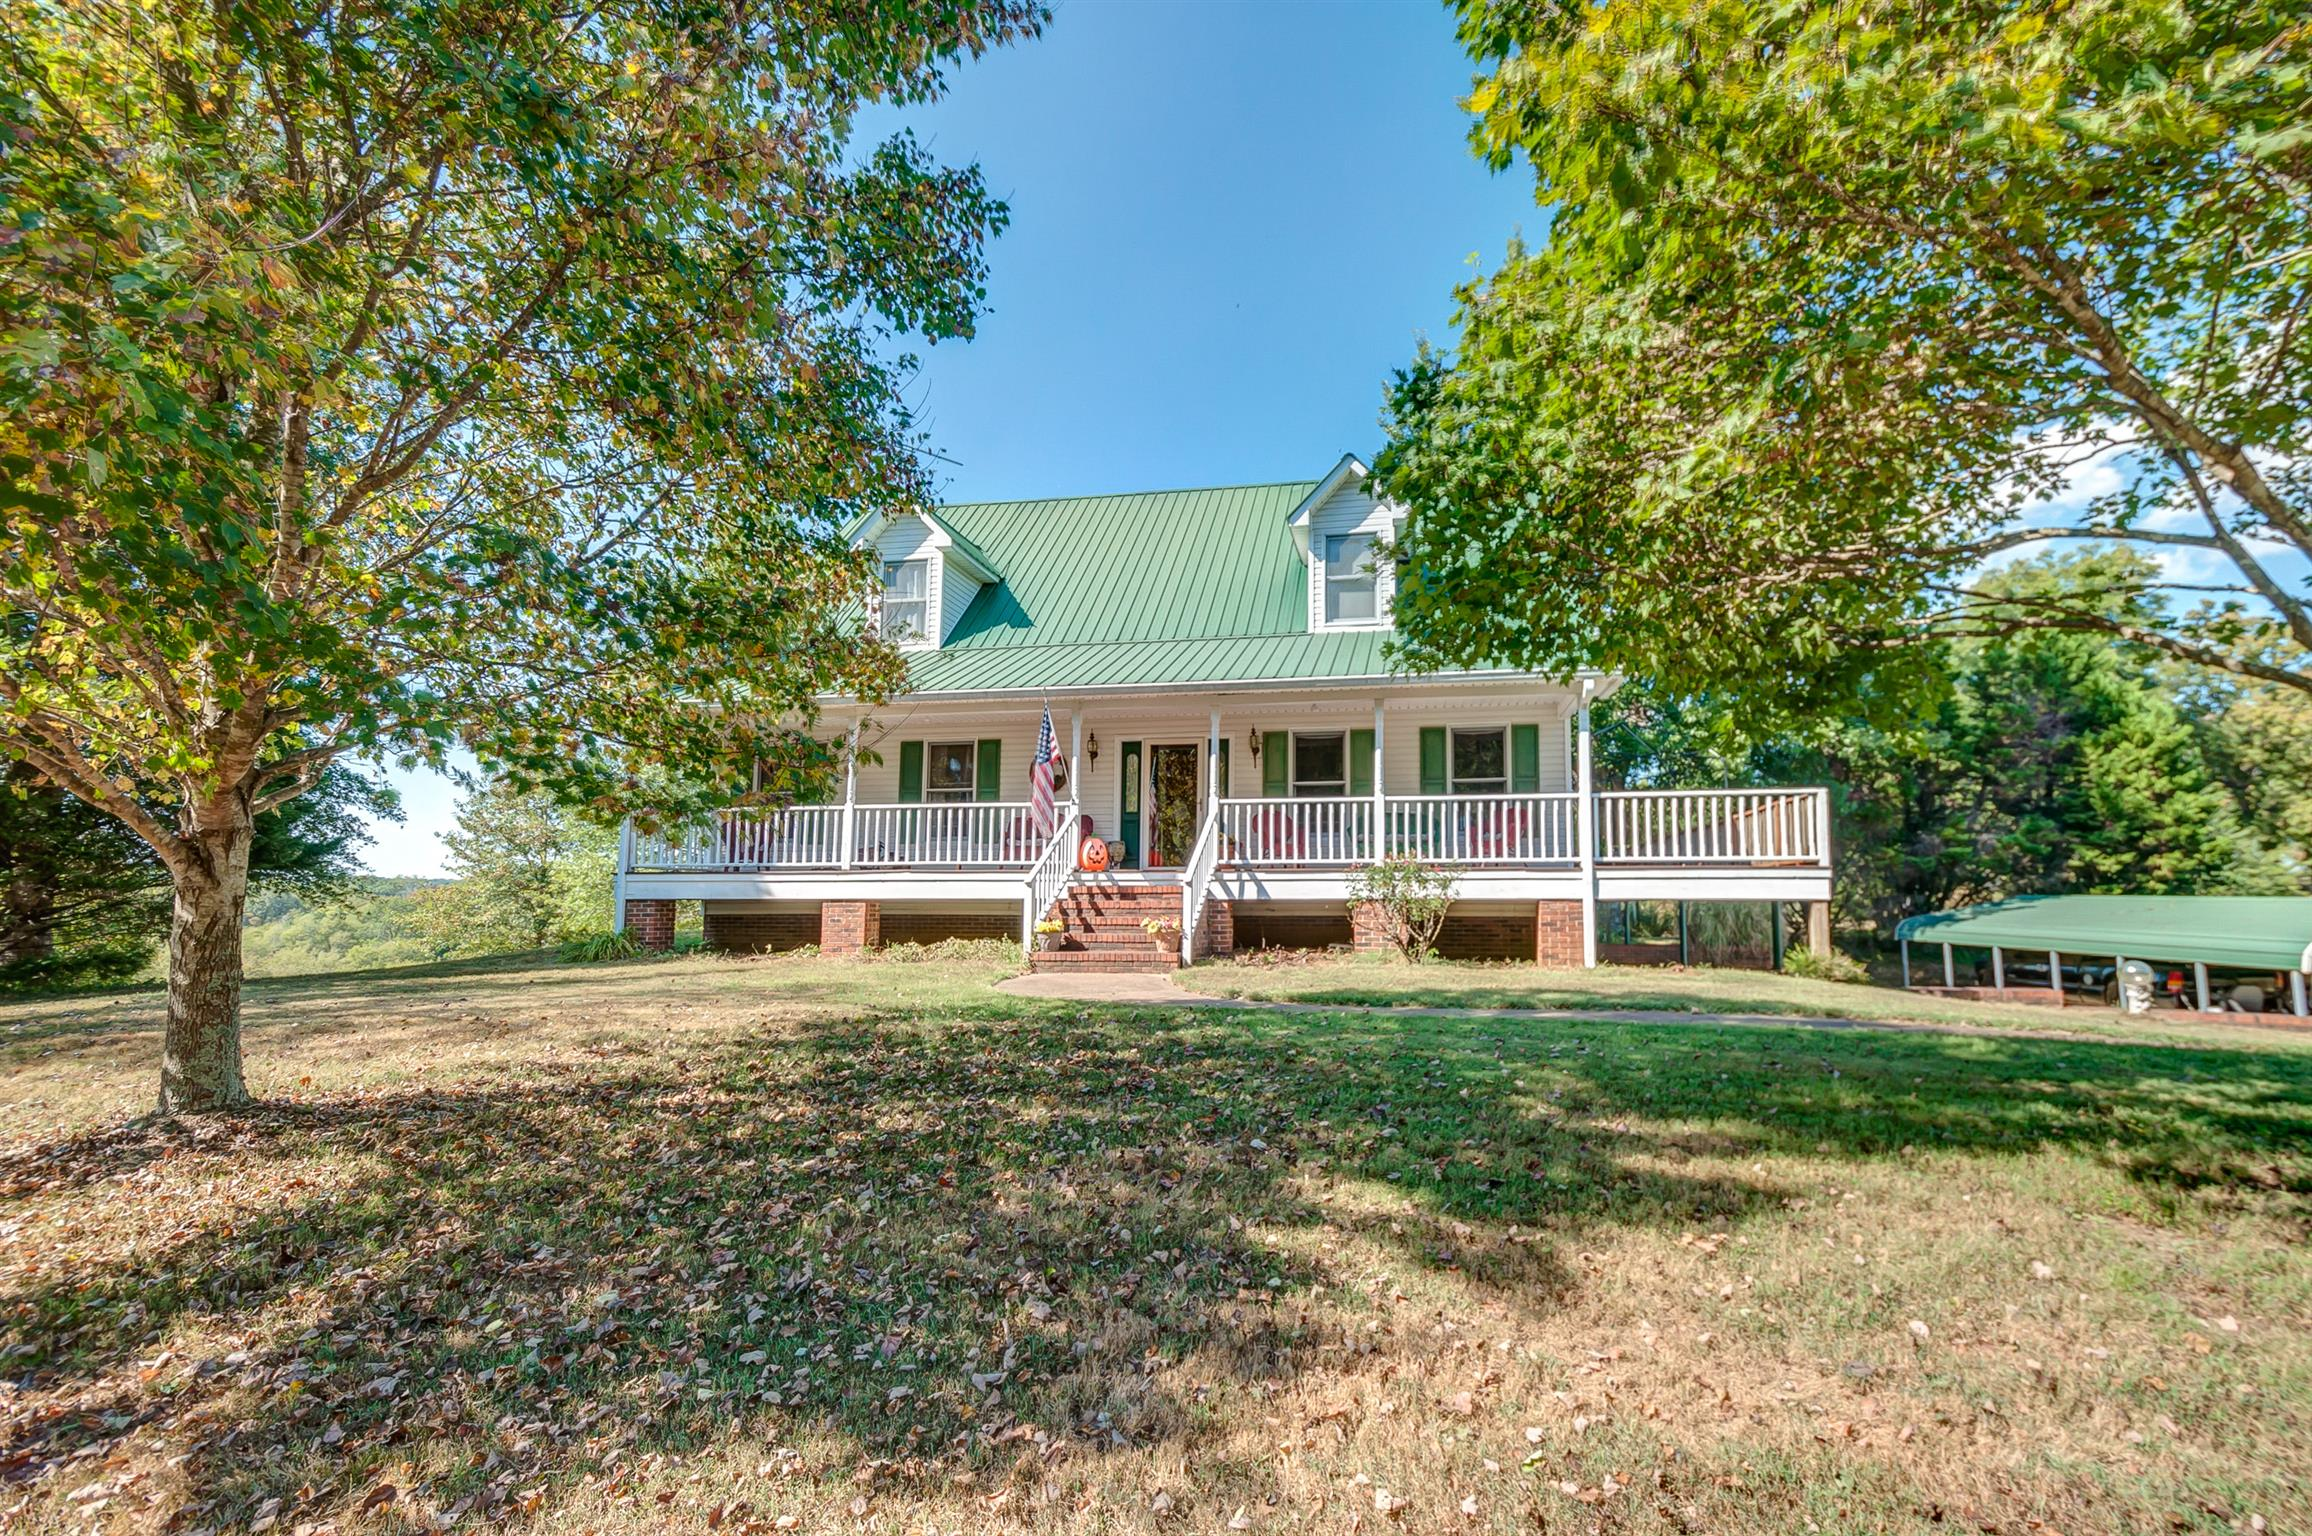 3728 John Bill Dobbins Rd, Williamsport, TN 38487 - Williamsport, TN real estate listing